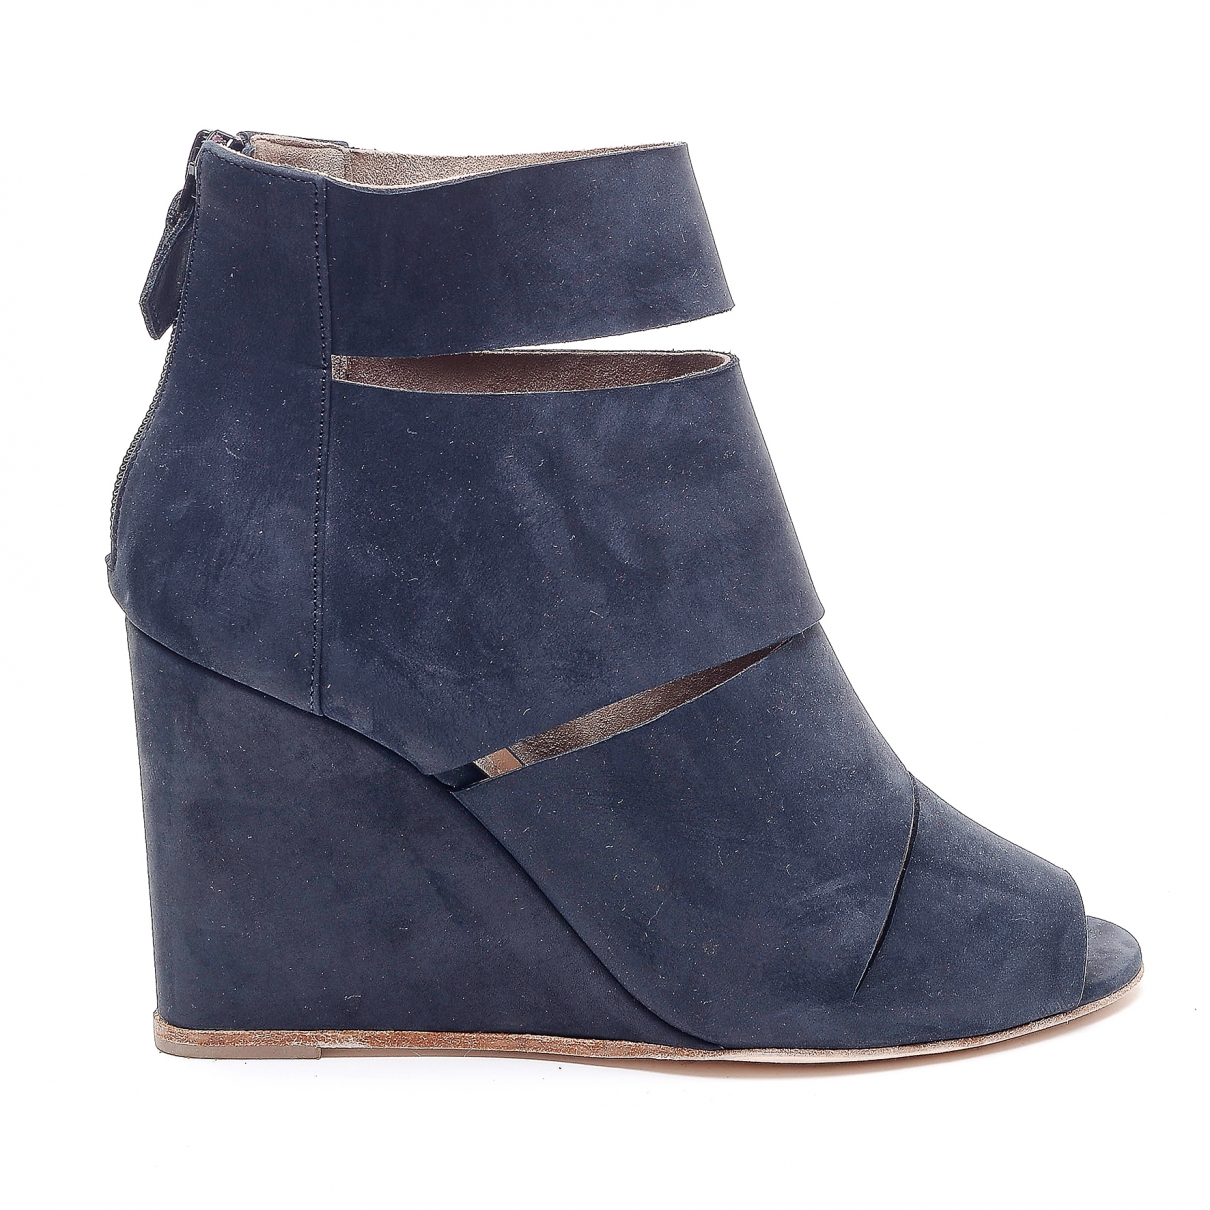 Hermès \N Grey Suede Ankle boots for Women 37 EU